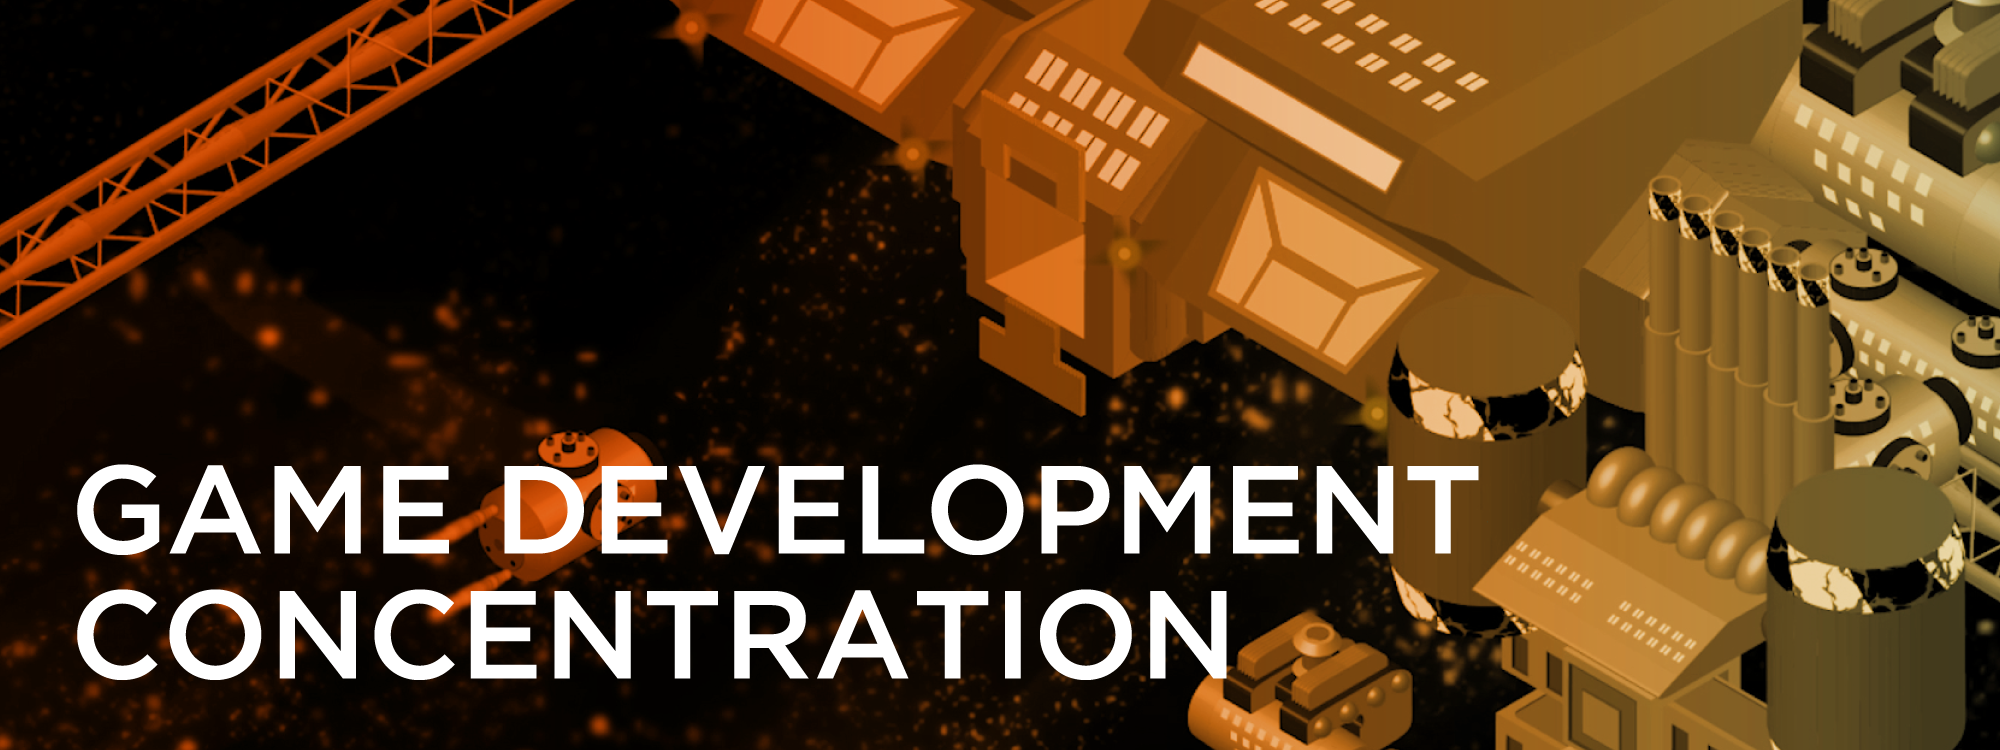 As mobile, online, and social platforms improve, more and more opportunities arise in the inherently interdisciplinary field. Boost your creativity and technical skills, and enhance your education with the Game Development Concentration.